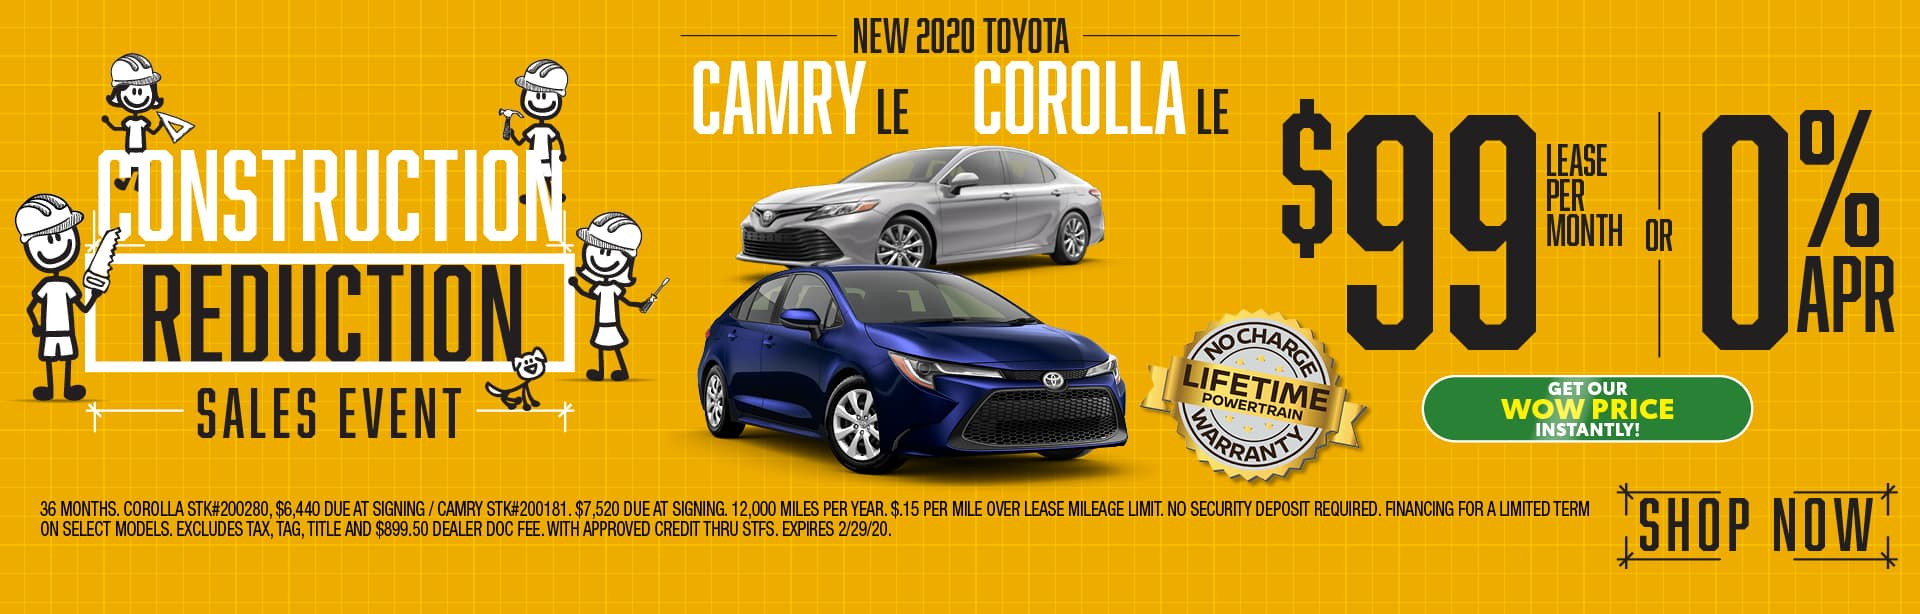 New 2020 Toyota Camry and Corolla